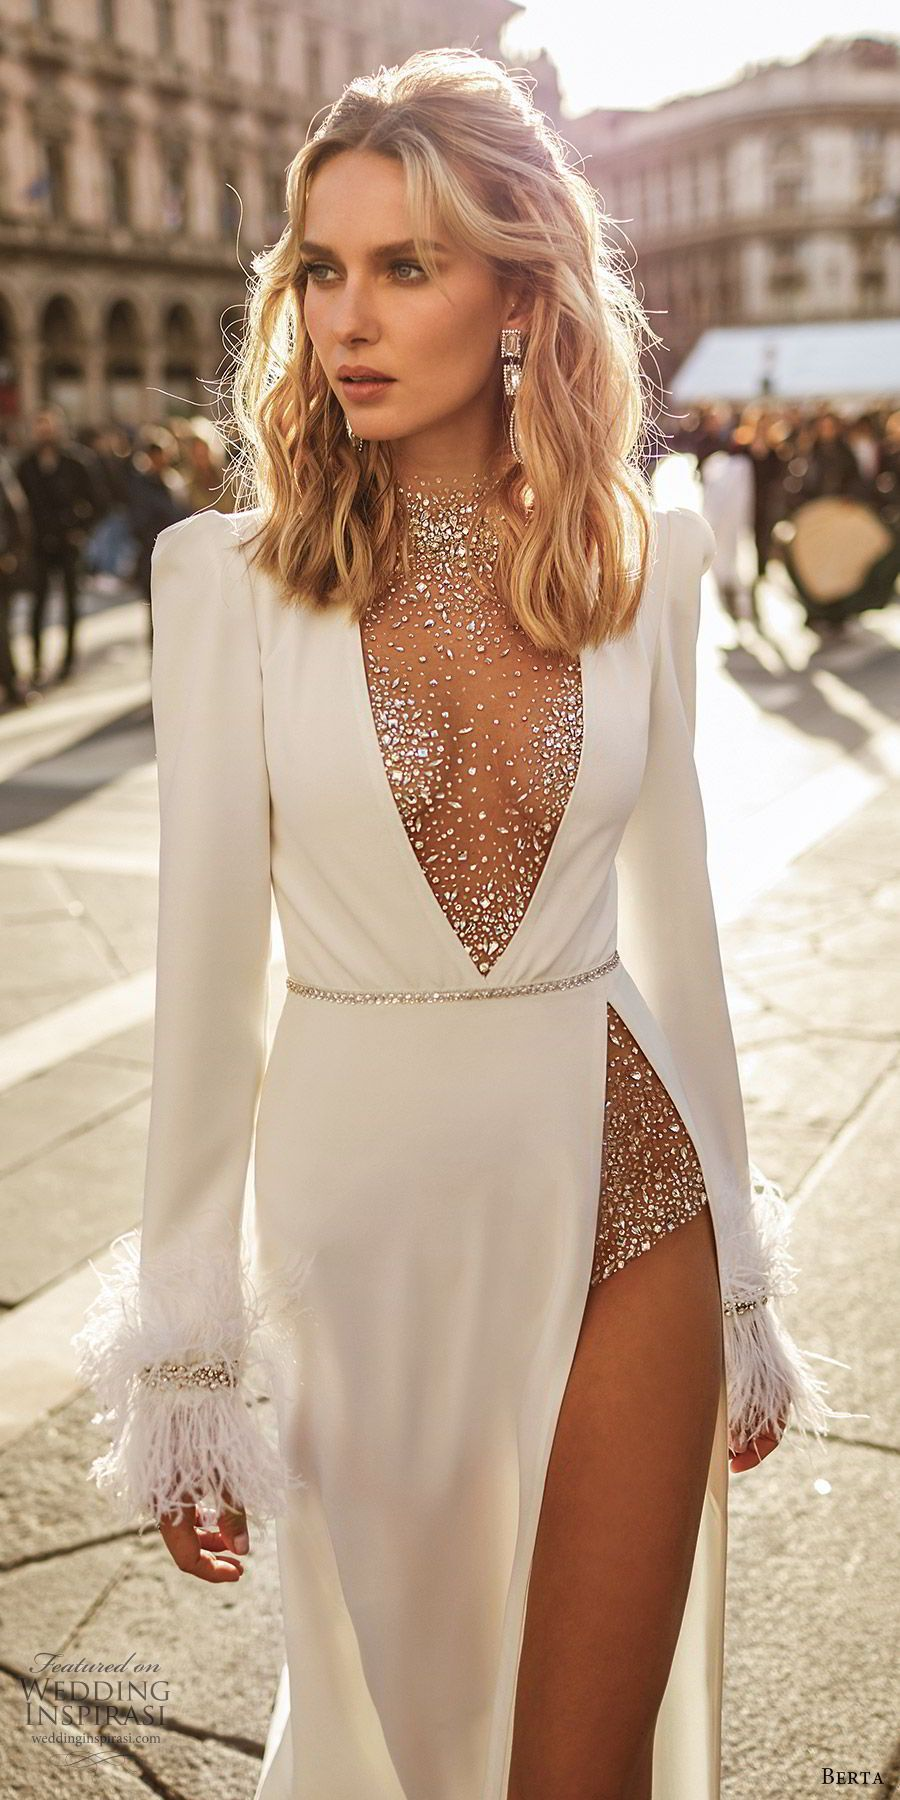 Berta Spring 2020 Wedding Dresses \u2014 \u201cMilano\u201d Bridal Collection For Spring 2020, Berta introduces intricate, never before seen fabrics alongside daring cuts and a mix of handmade embellishments for a collection #fashiondresses